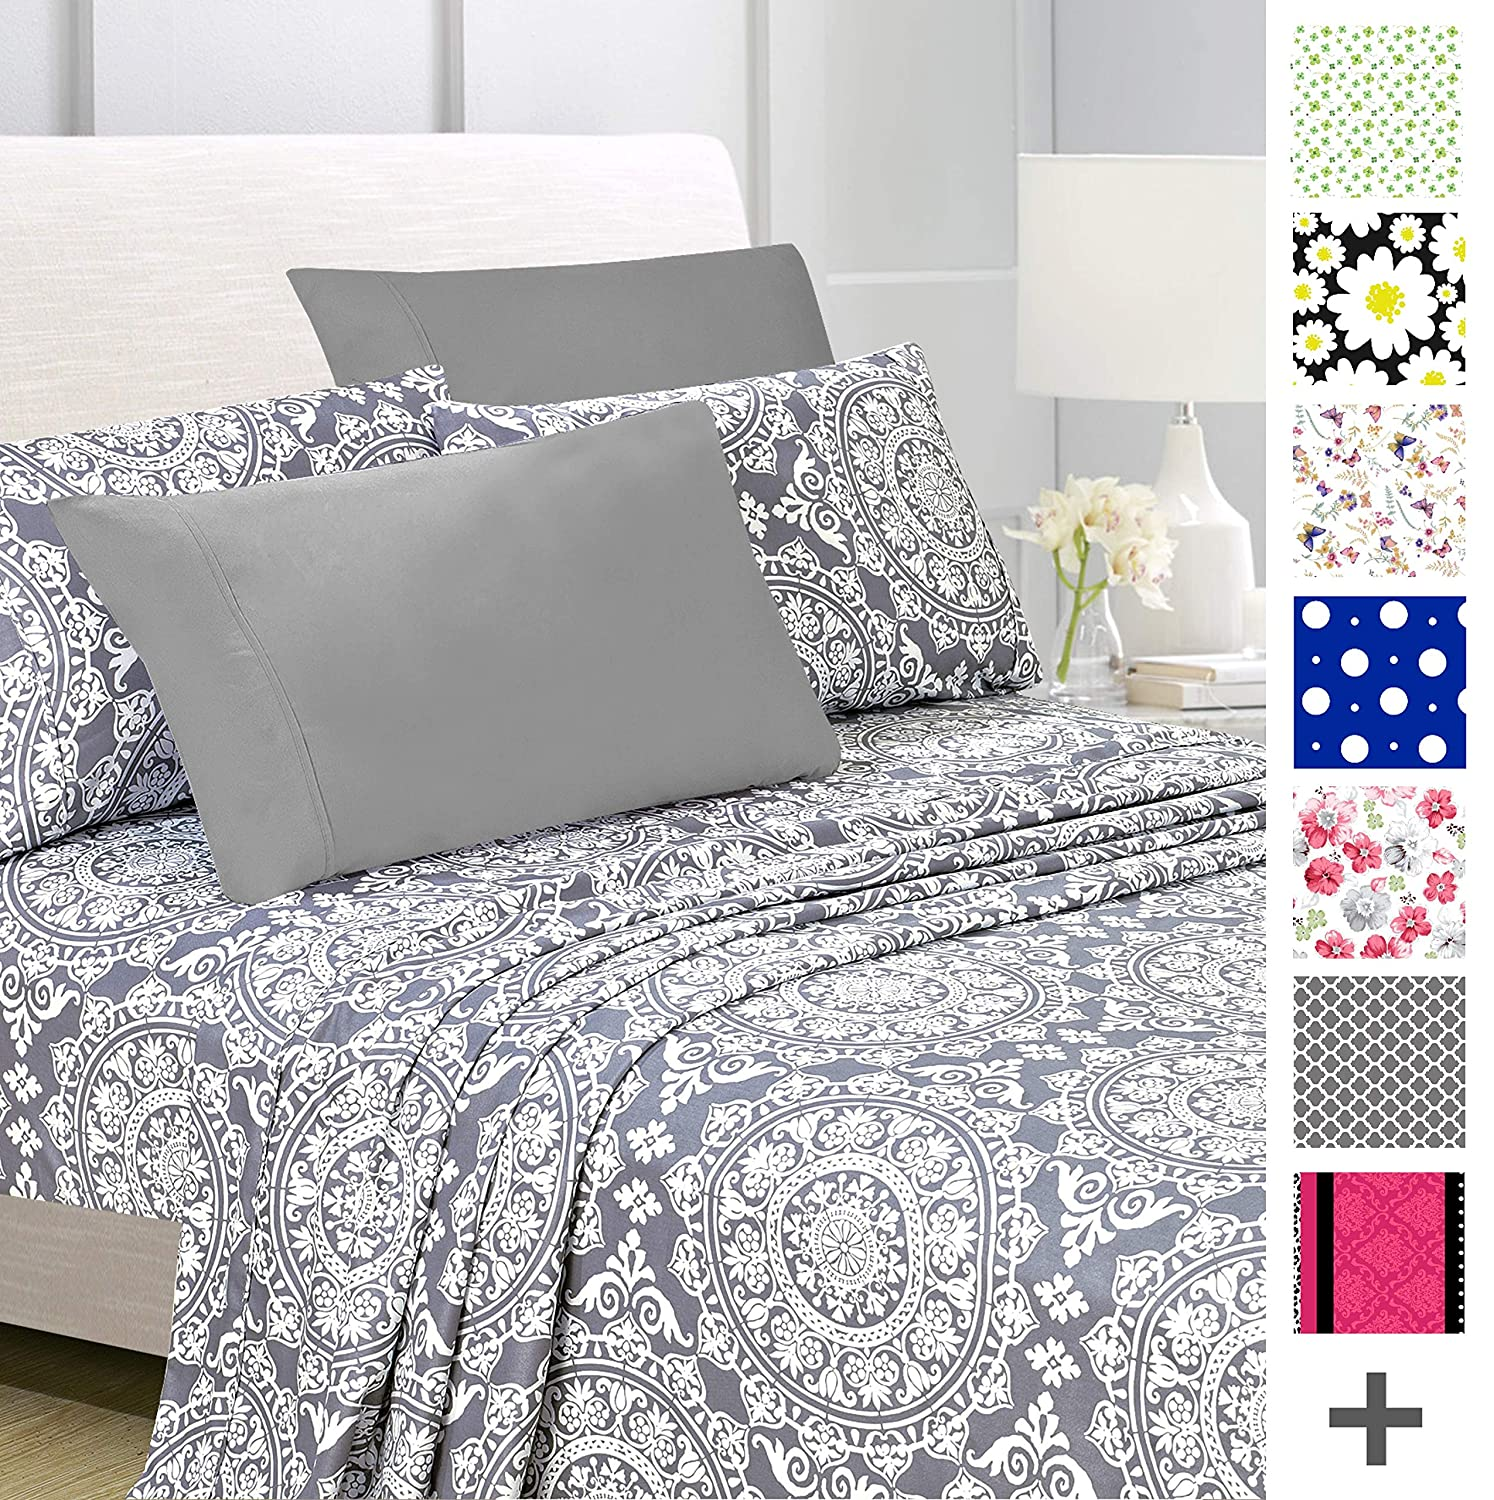 American Home Collection Deluxe 6 Piece Printed Sheet Set Highest Quality Of Brushed Fabric, Deep Pocket Wrinkle Resistant - Hypoallergenic (Queen, Grey Geometric)